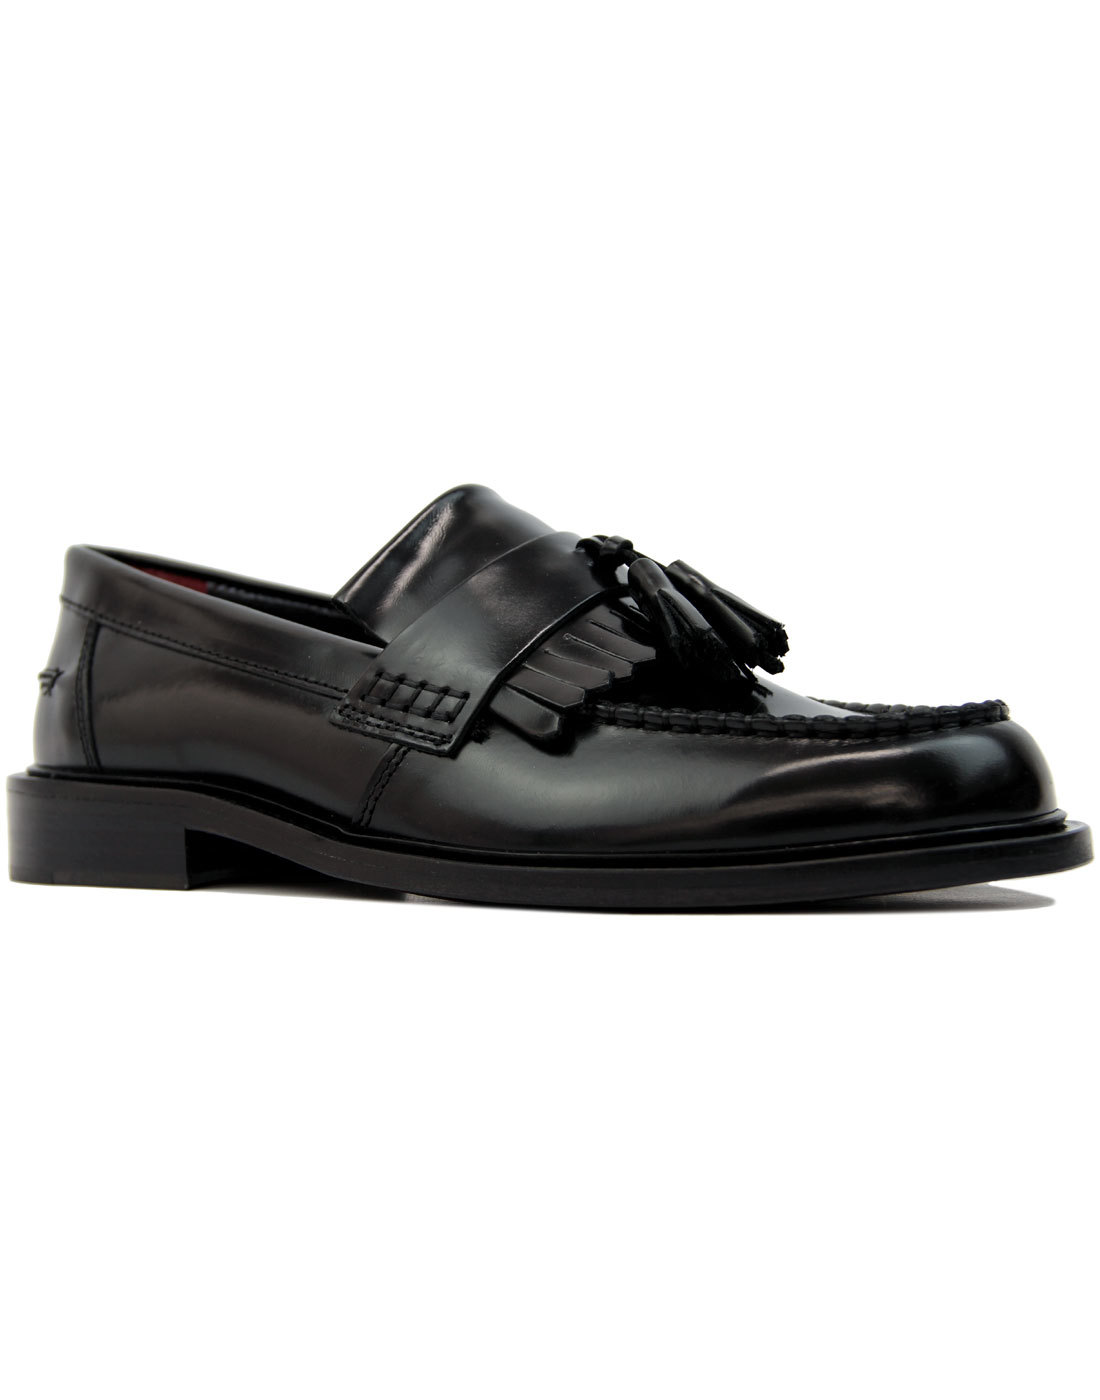 'Rudeboy' Mod Tassel Loafers by DELICIOUS JUNCTION